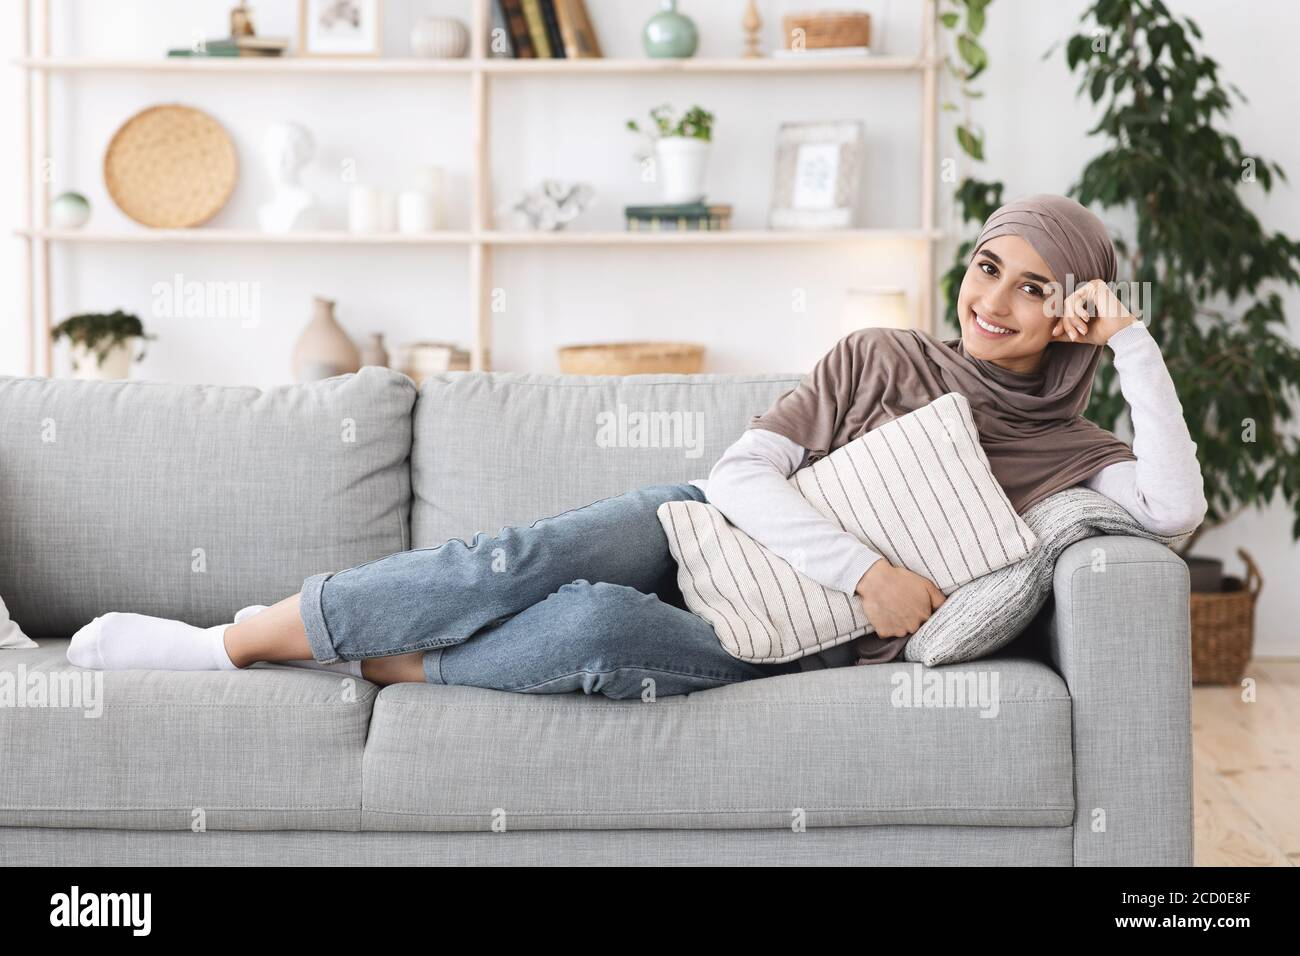 Relaxed Arabic Woman Lying On Couch At Home Cuddling Pillow Enjoying Weekend Stock Photo Alamy